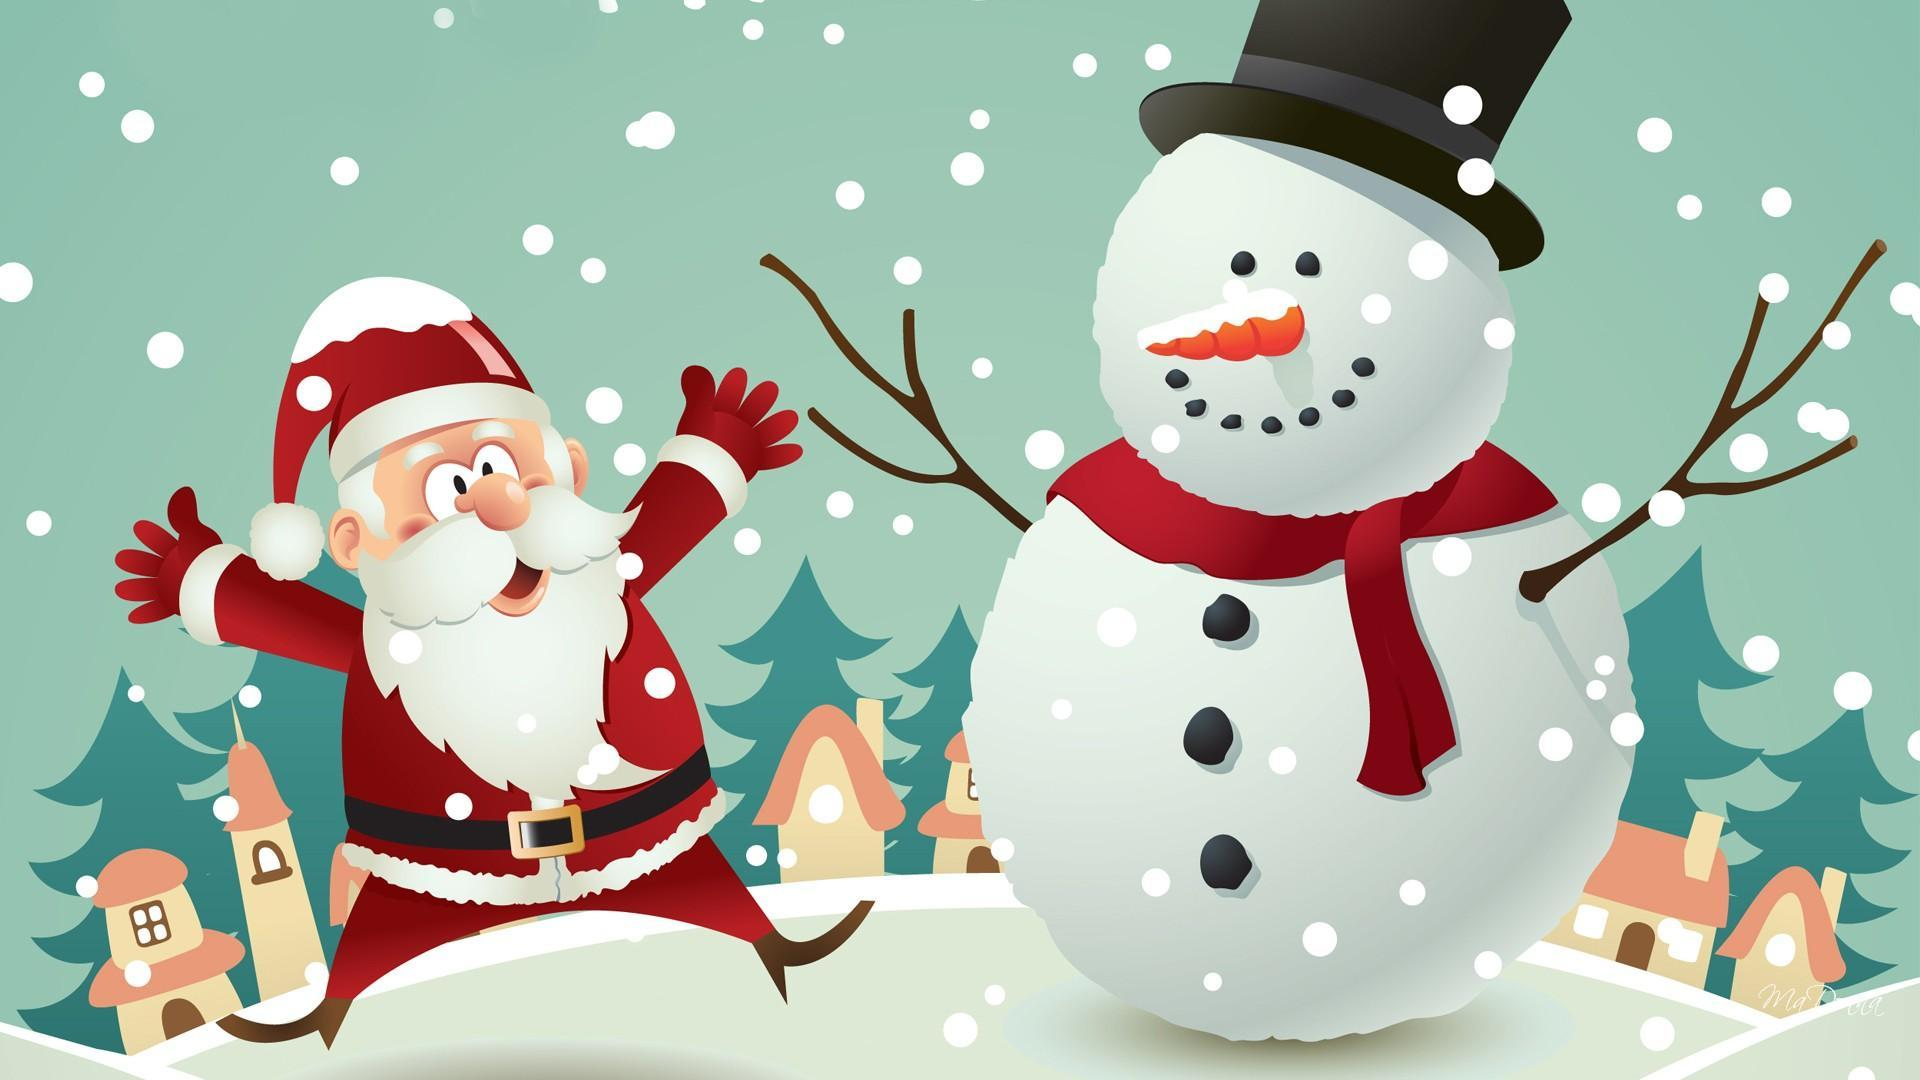 Frosty The Snowman Wallpapers - Wallpaper Cave